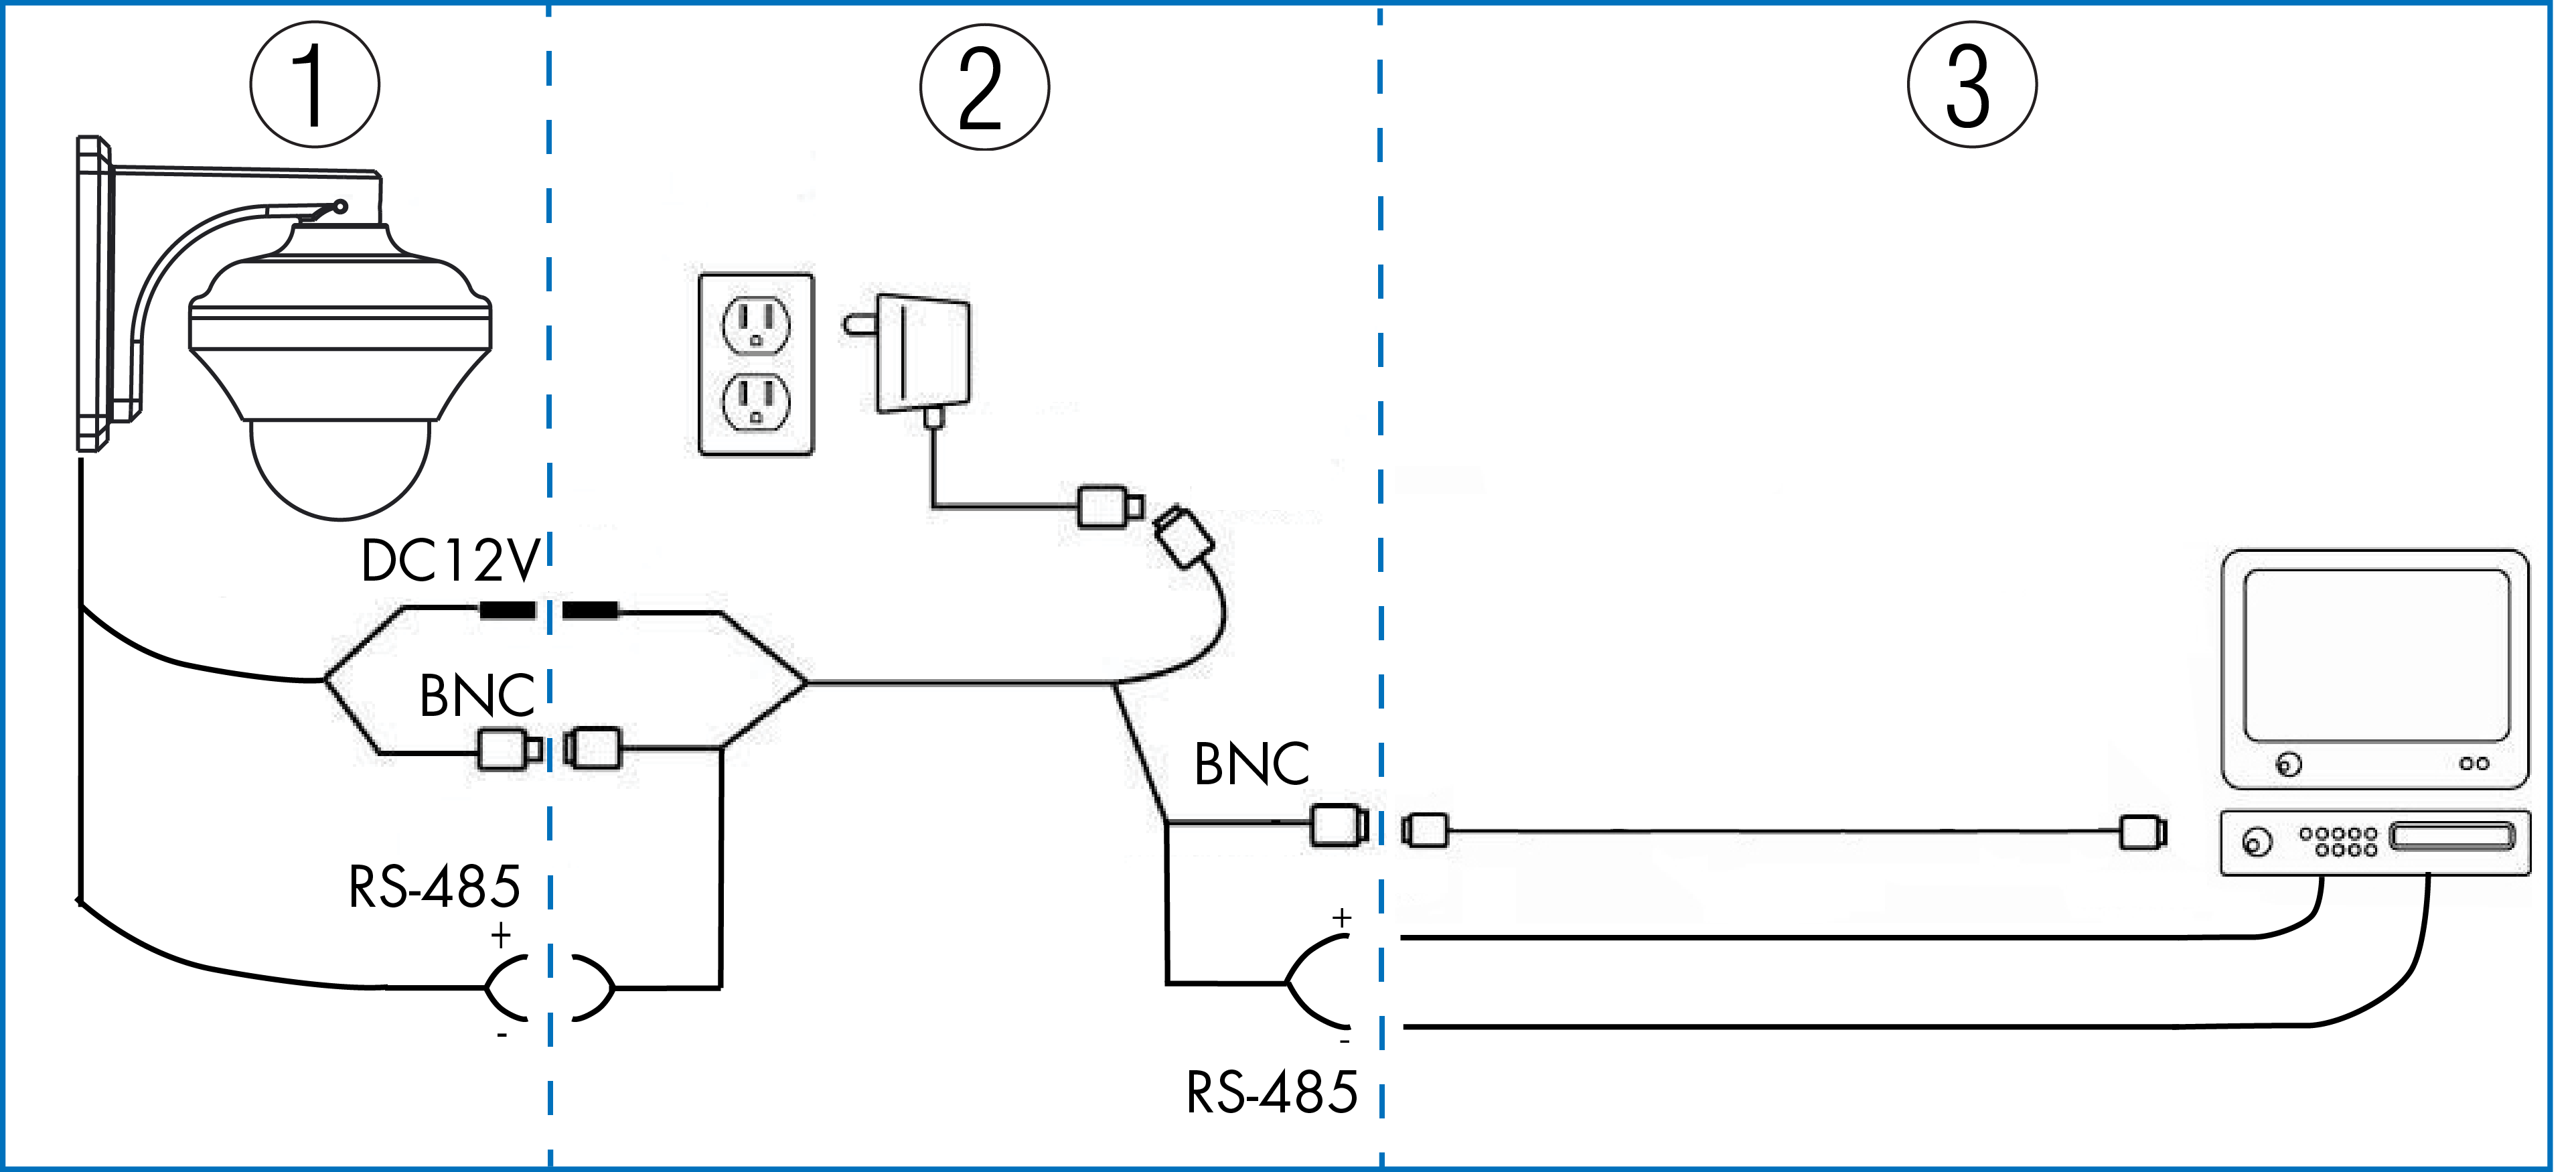 Lzc7092b Ptz Camera Frequently Asked Questions Lorex Rs485 Cable Wiring Diagram Connect Cables To The Included Extension 2 Power Adapter On Side Away From